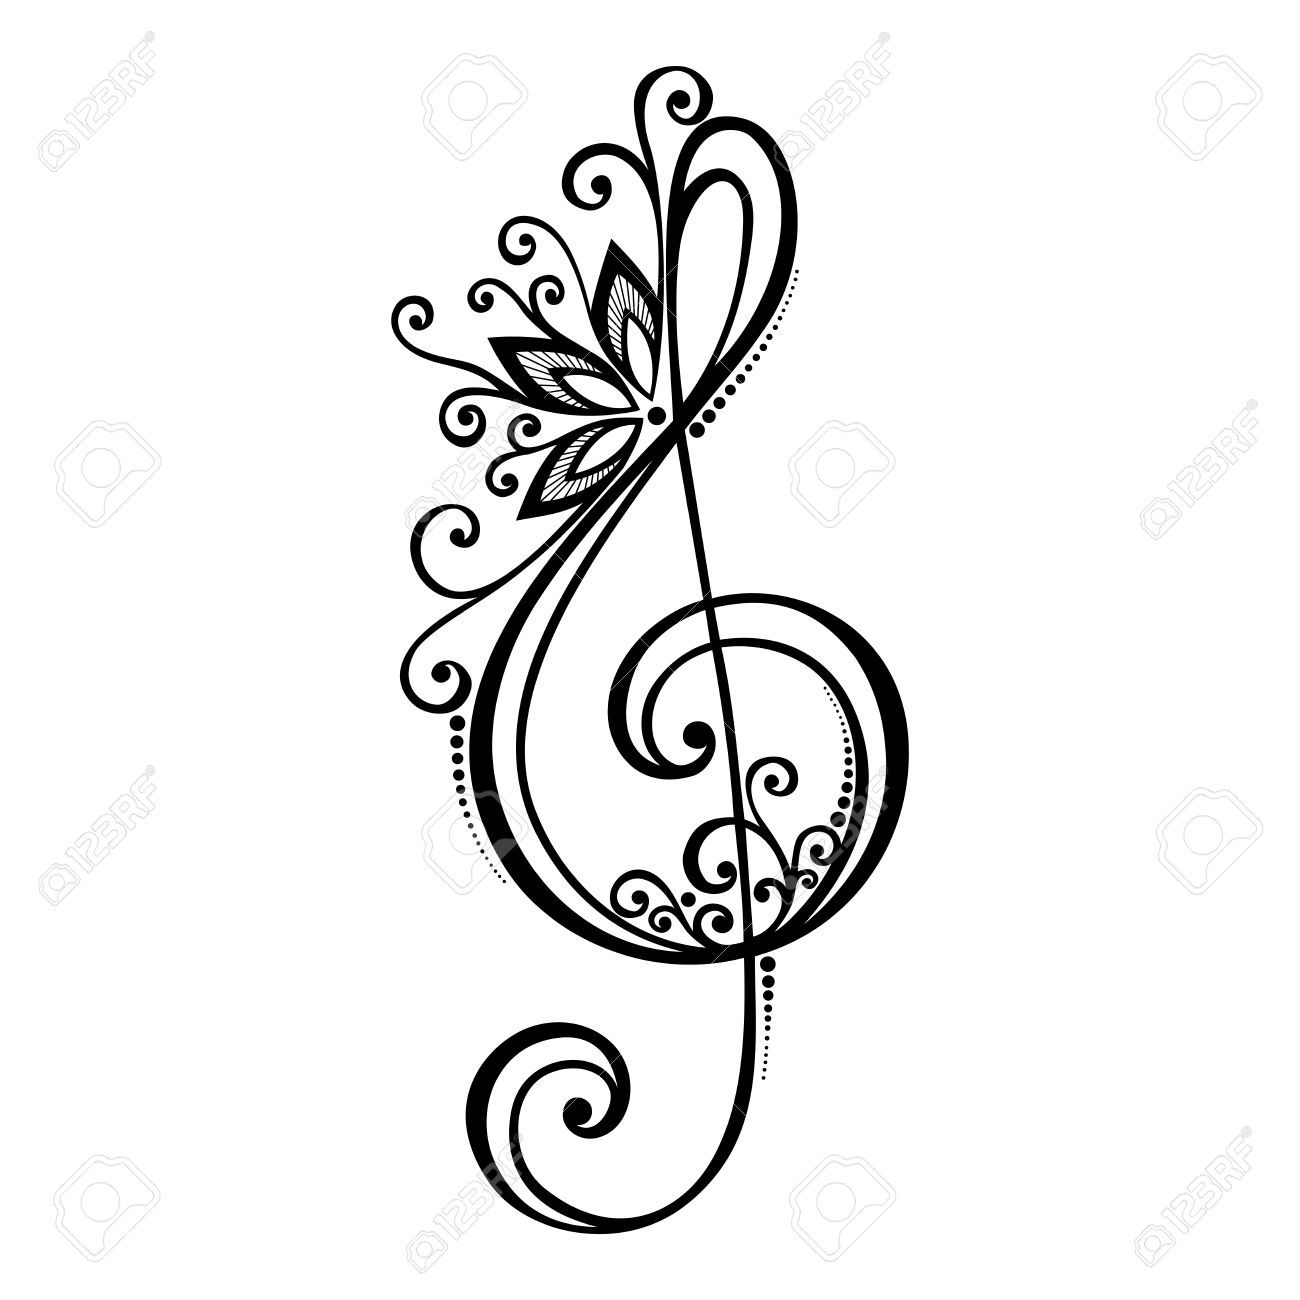 love music notes coloring pages | floral treble clef tattoos - Google Search | Music tattoos ...